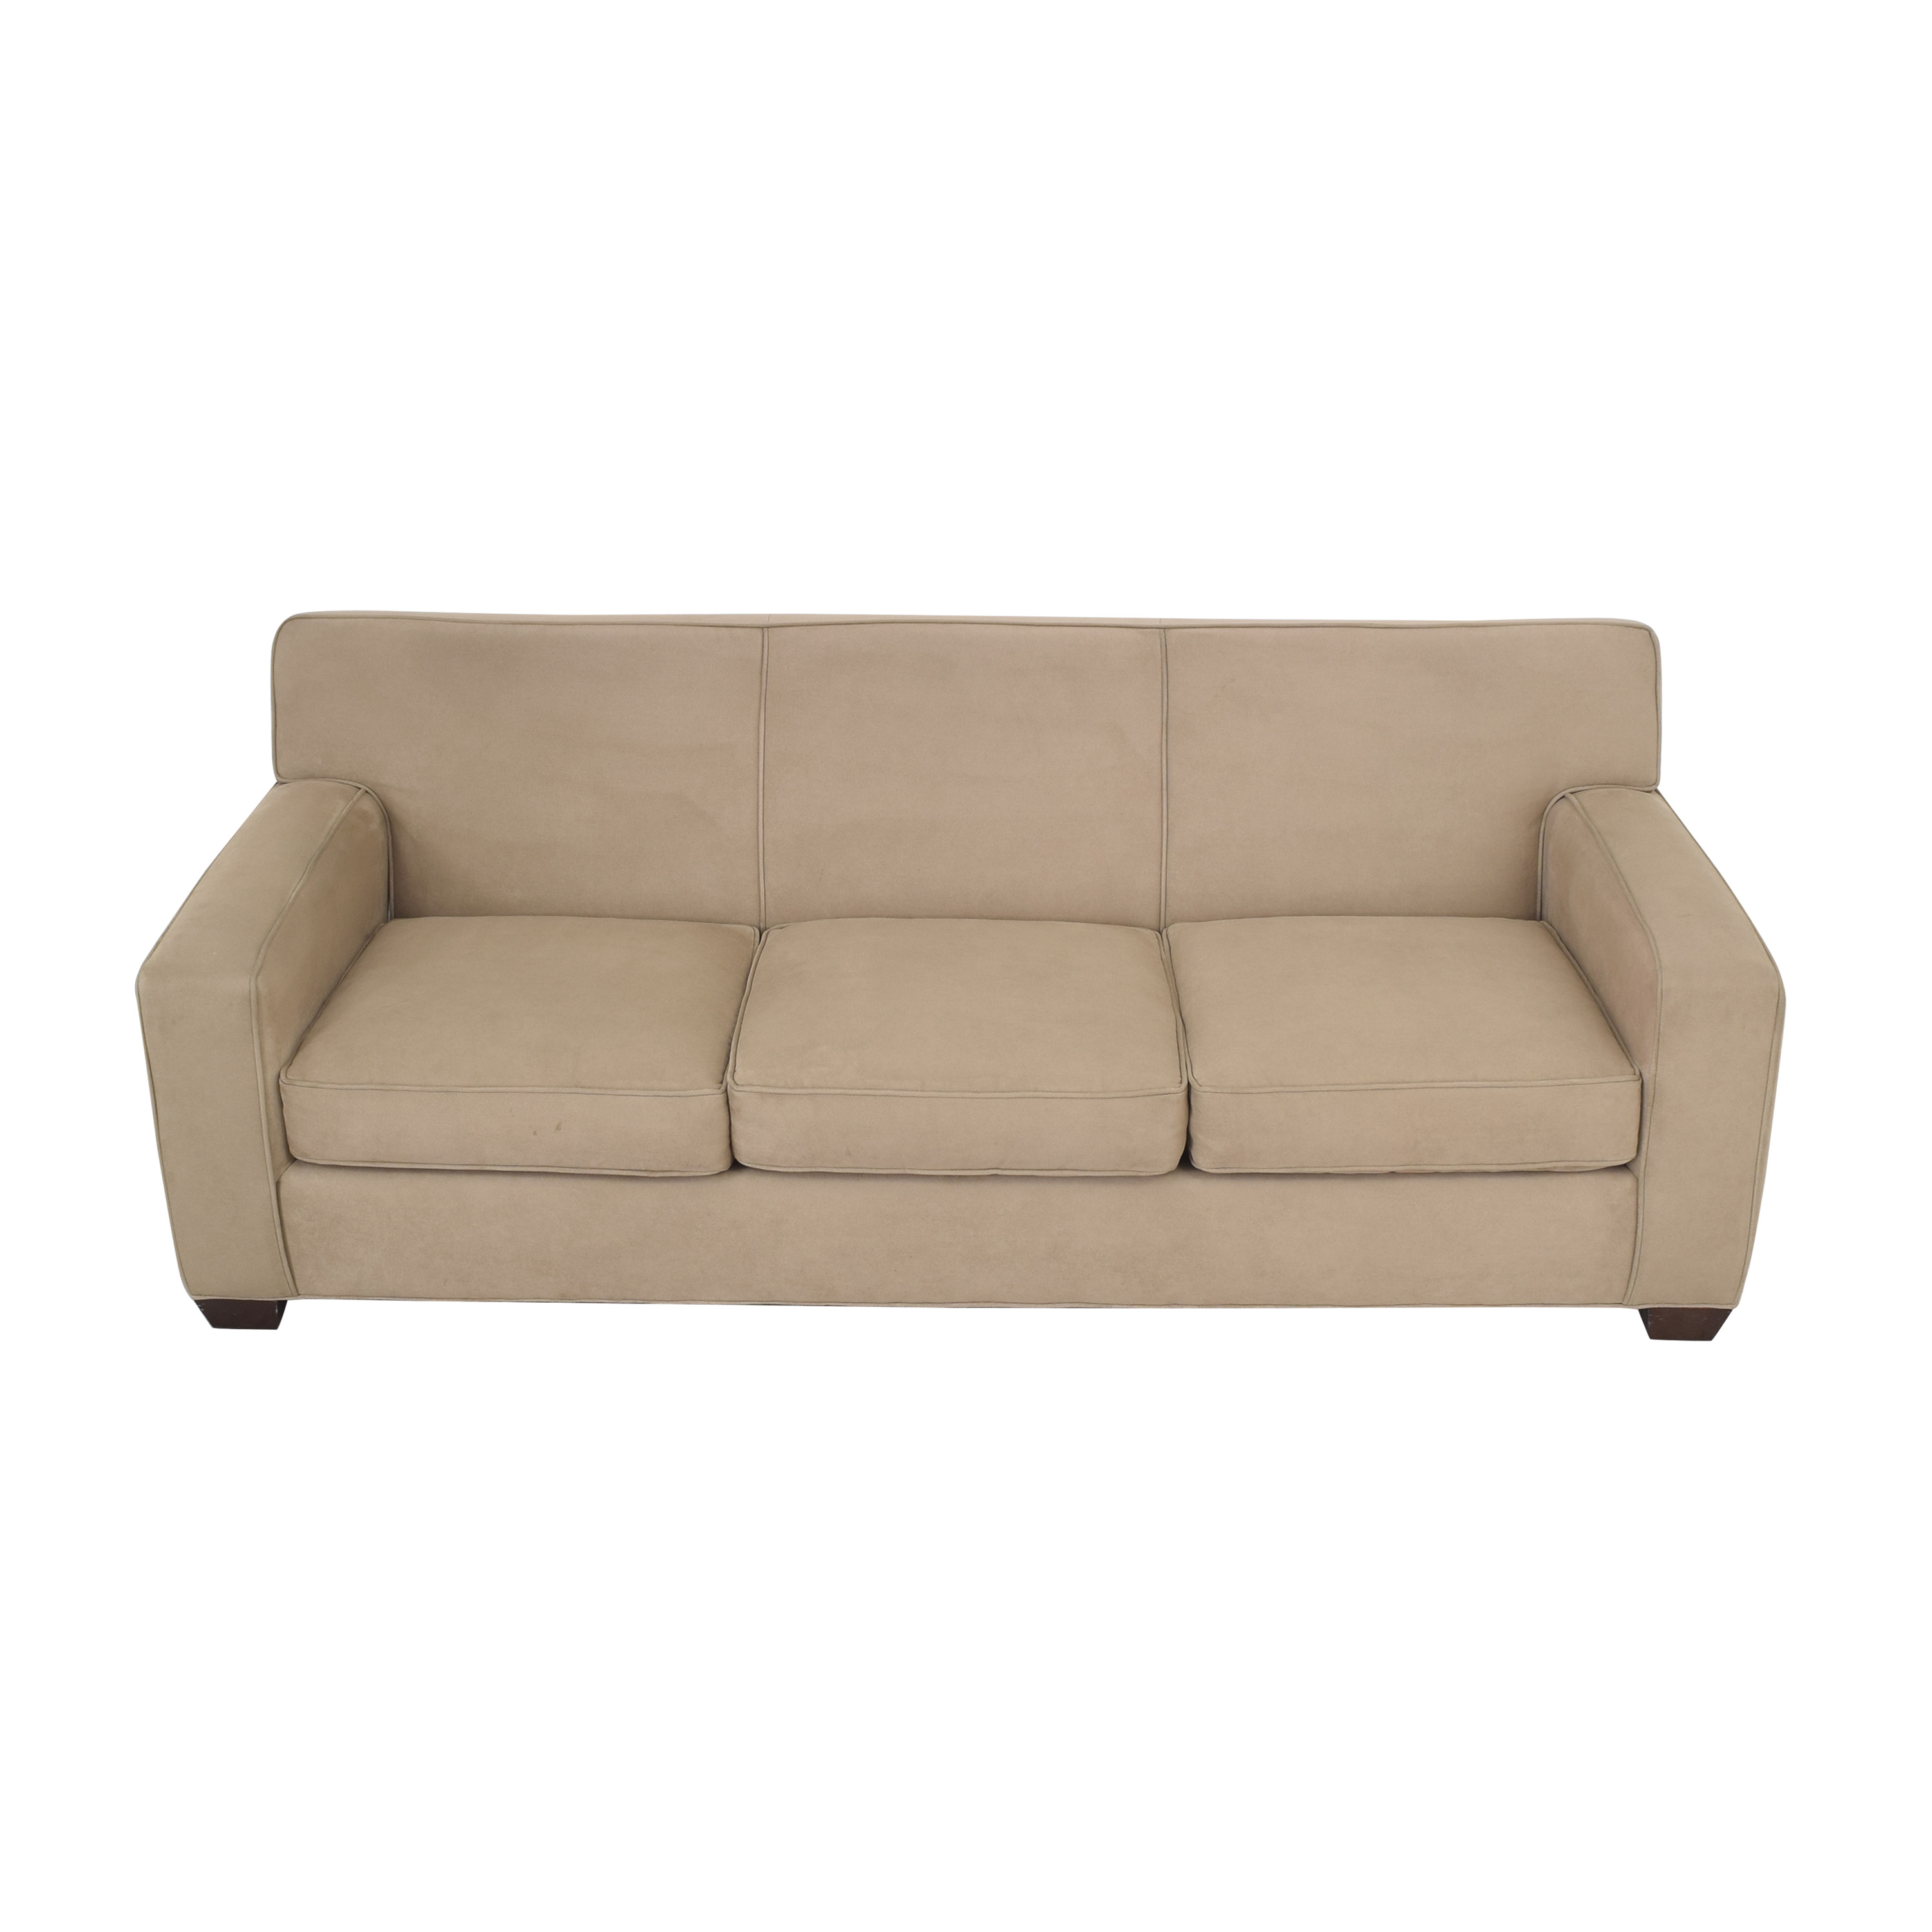 Crate & Barrel Crate & Barrel Axis II Three Seat Sofa discount